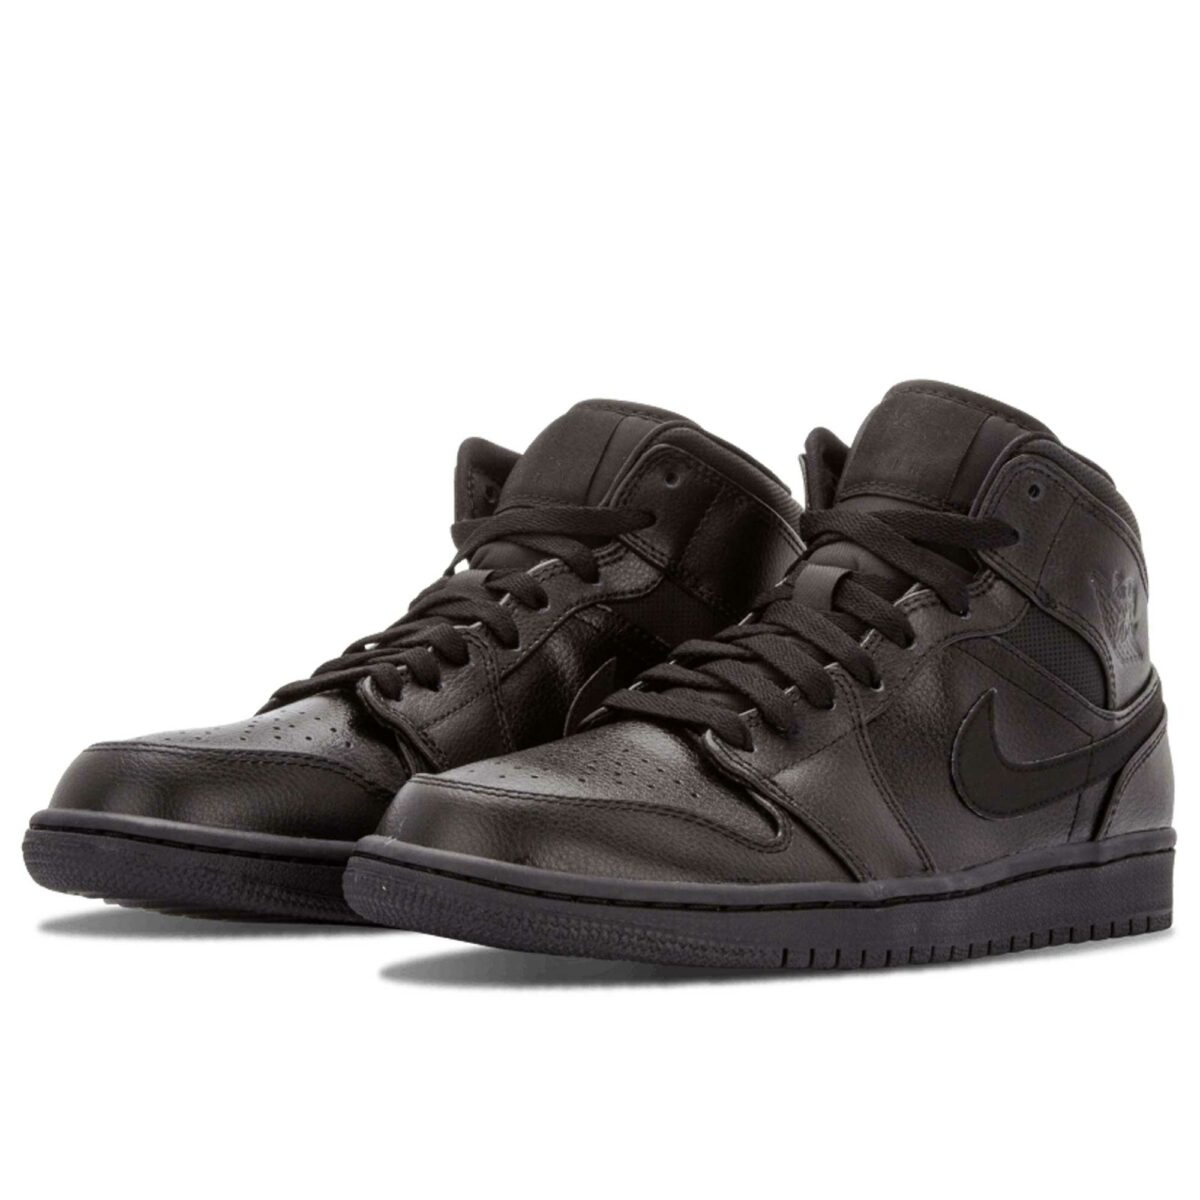 air jordan 1 retro high og black 554724_030 купить